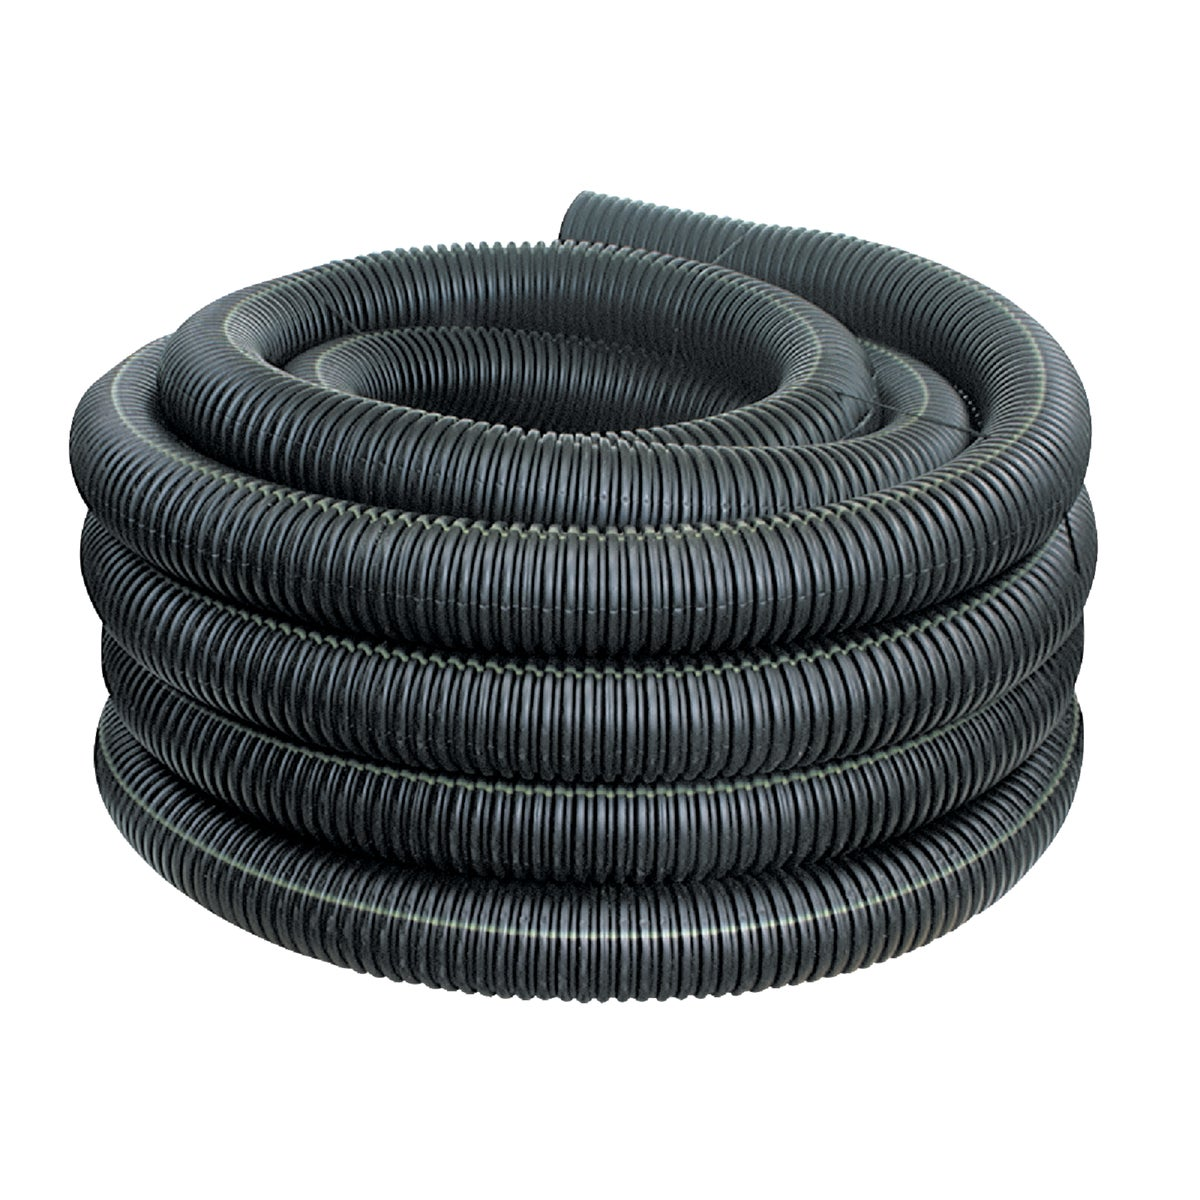 "4""X100' SOLID PIPE - 451-100 by Advanced Drainage Sy"